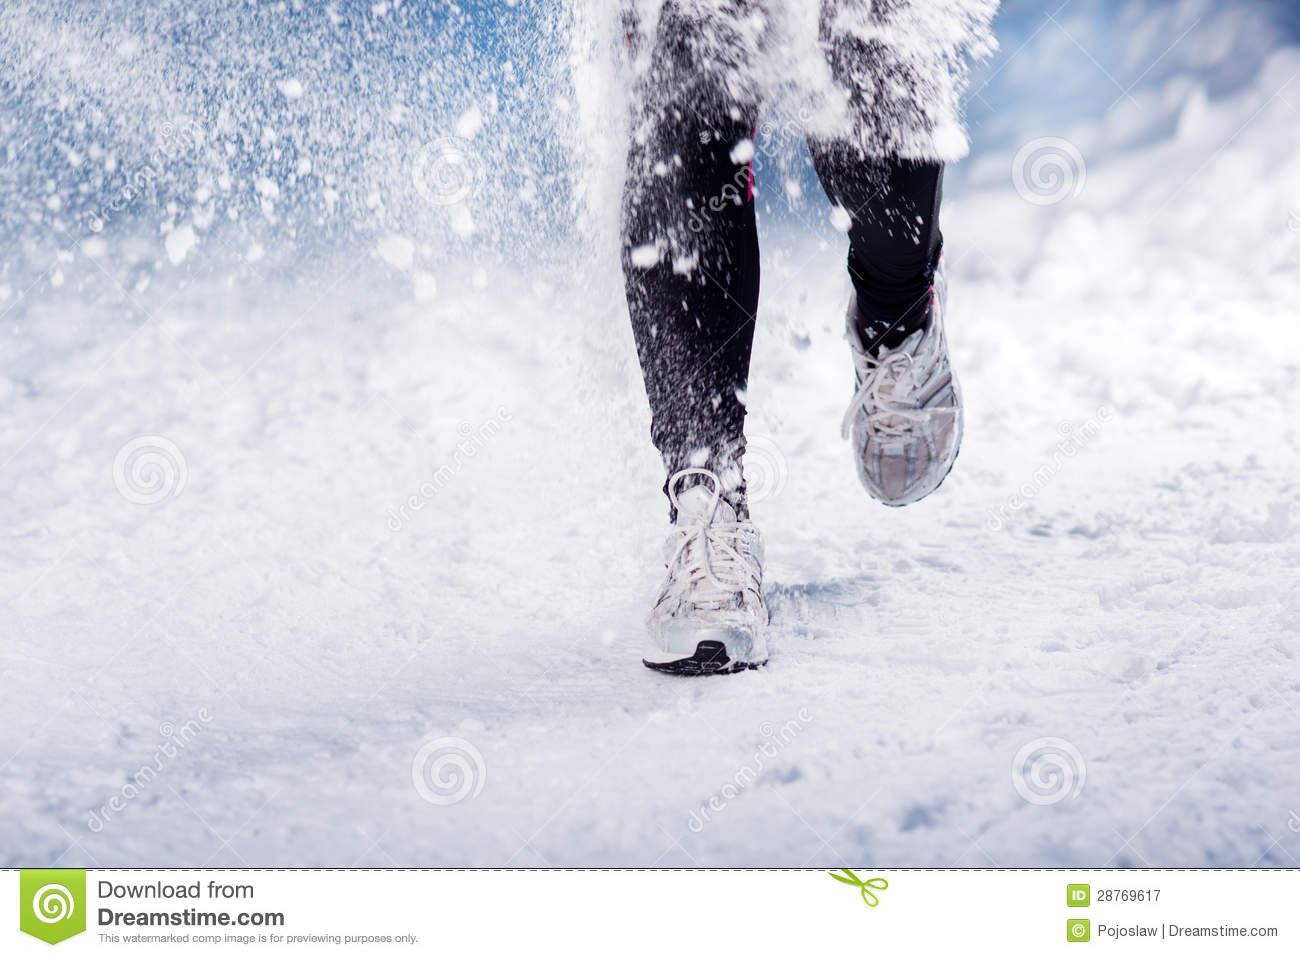 Falling Snow Wallpaper Download Winter Running Woman Royalty Free Stock Photography